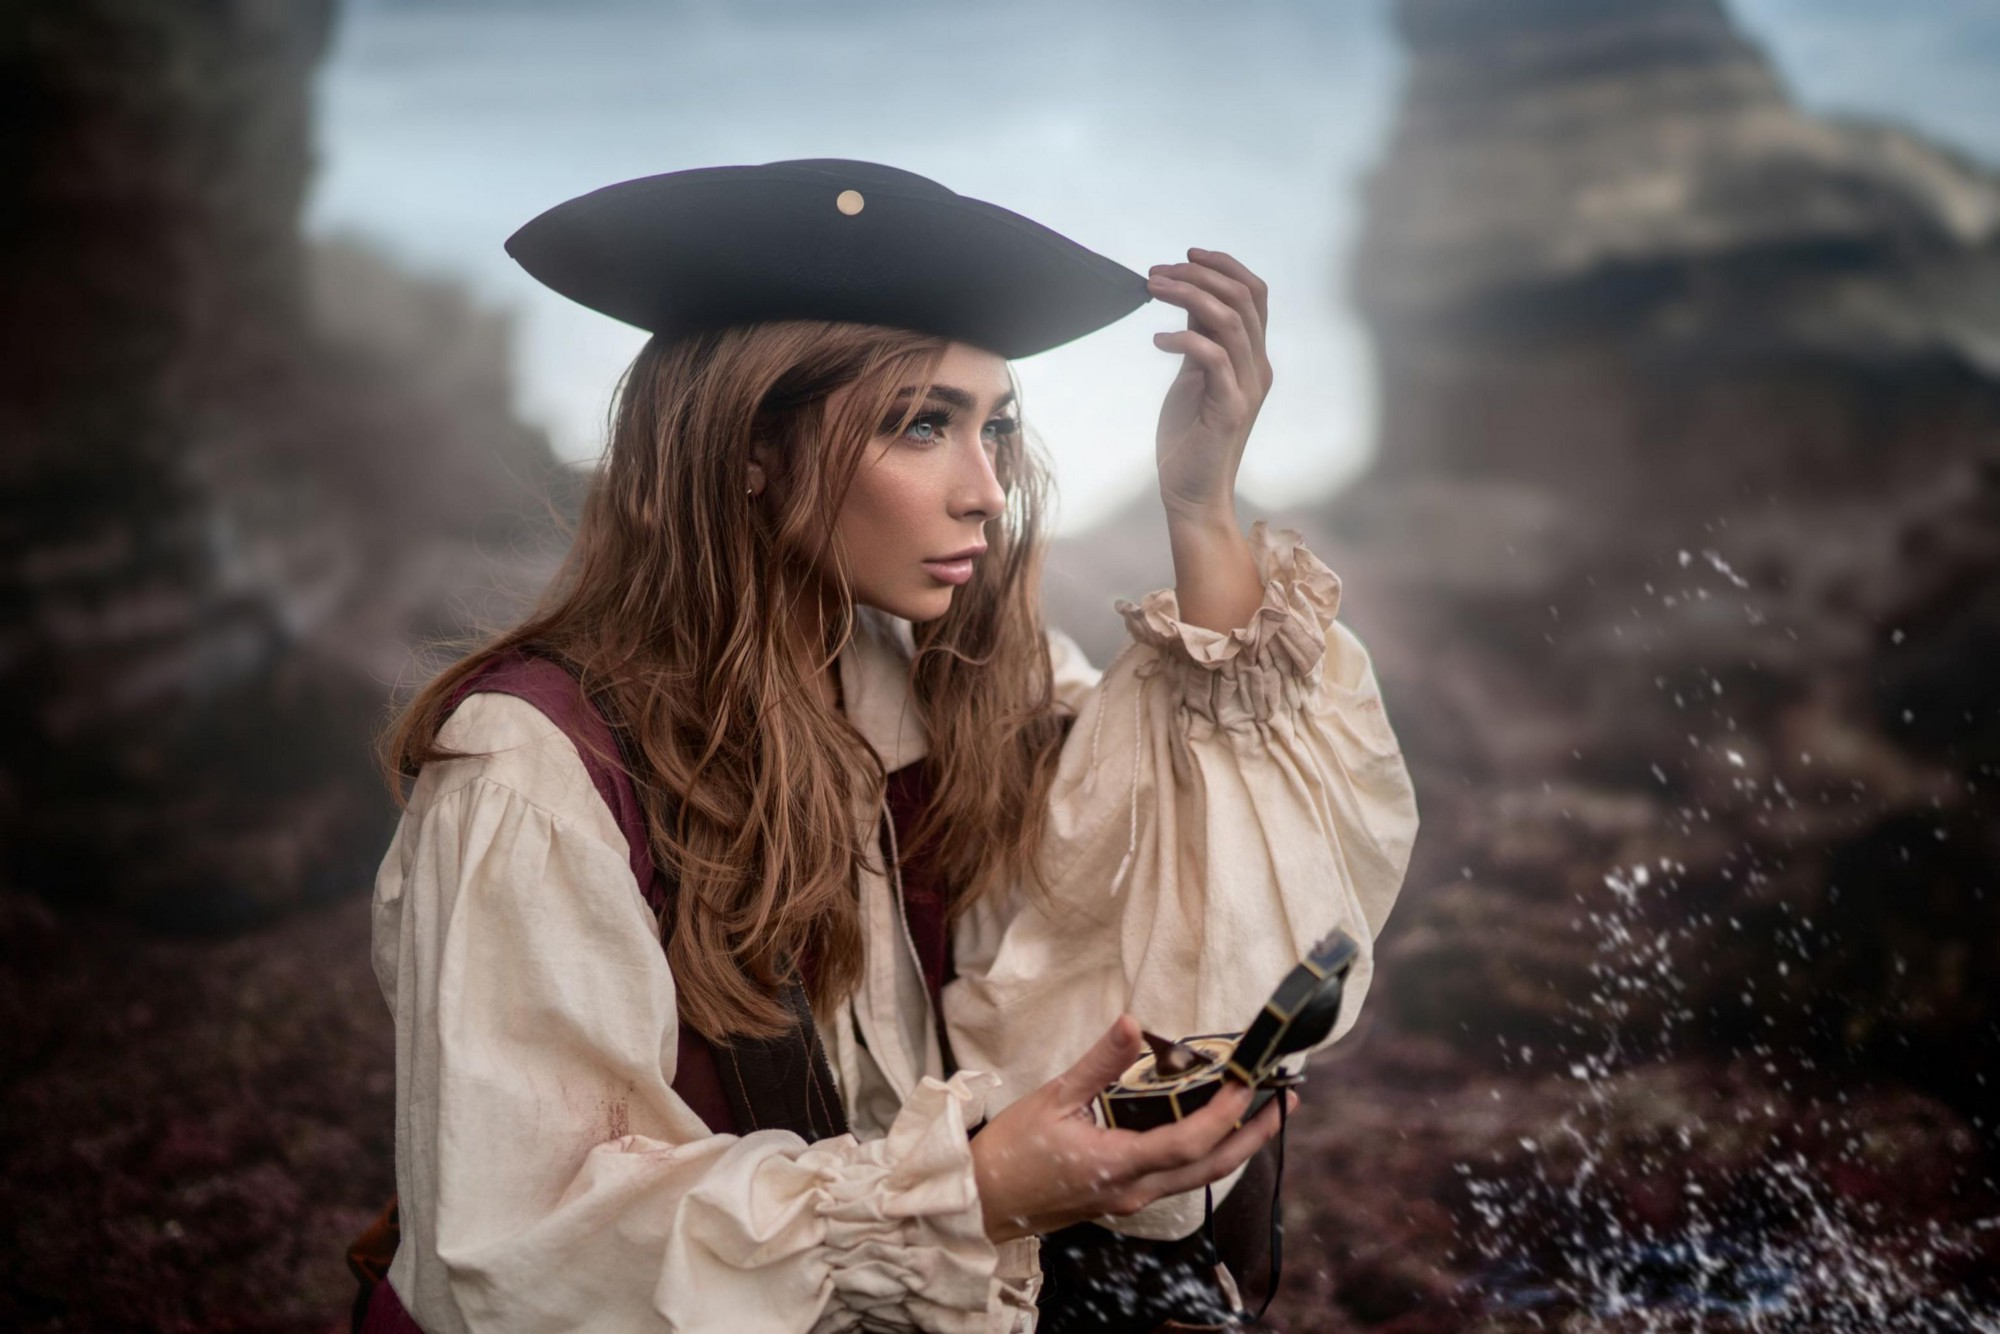 A woman in a pirate outfit holding a compass near a beach cave.